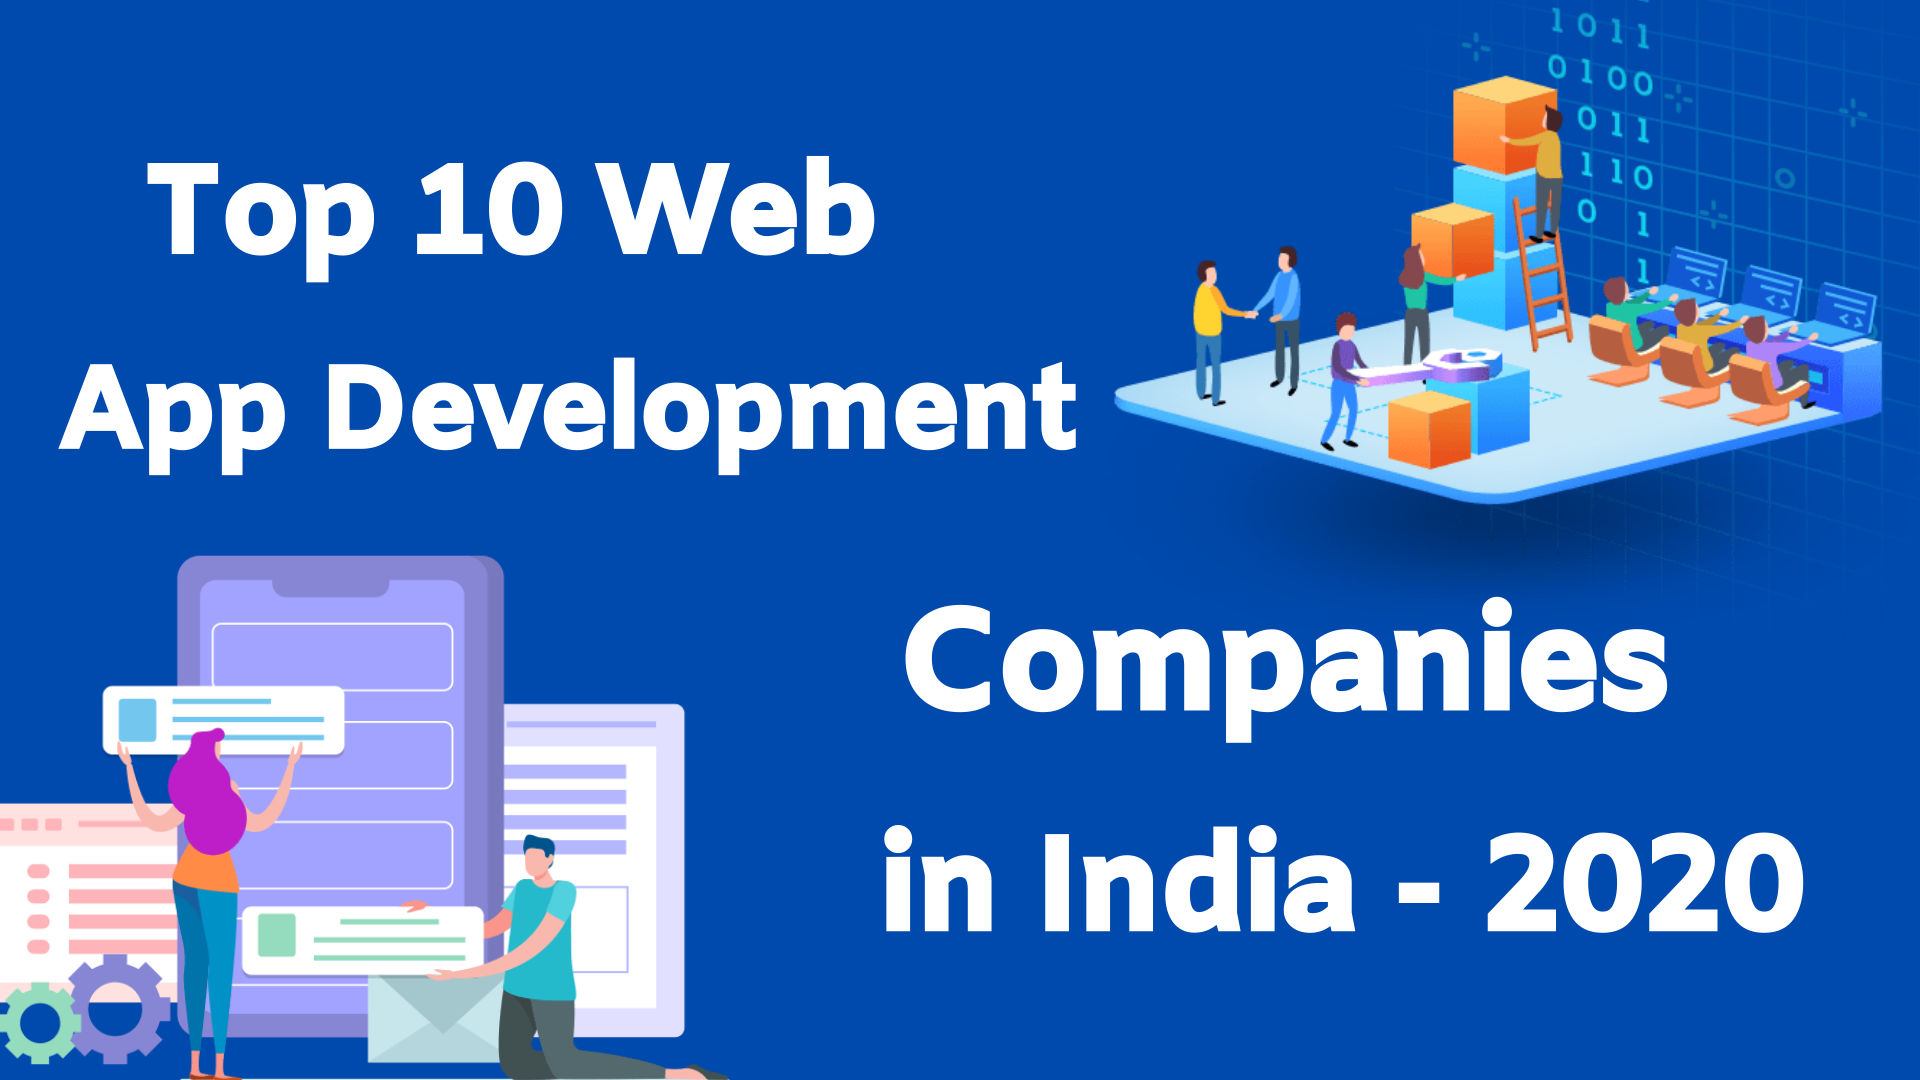 Top 10 Web App Development Companies In India 2020 By Dhineshbabu Perumal Samy Medium